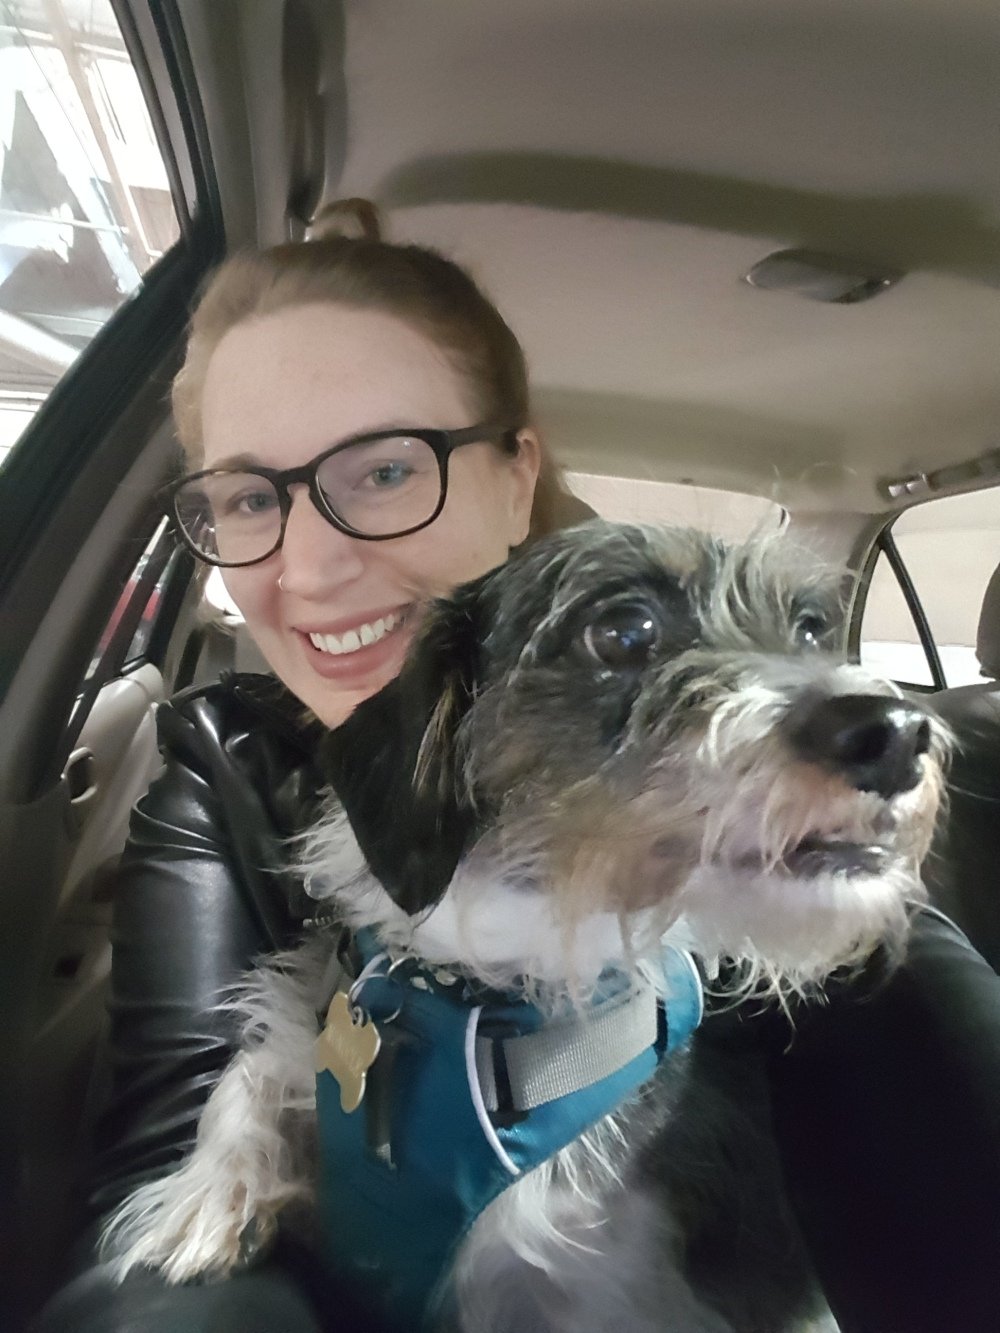 Blonde woman with big glasses, a leather jacket, and an adorable scruffy dog sitting in a car.